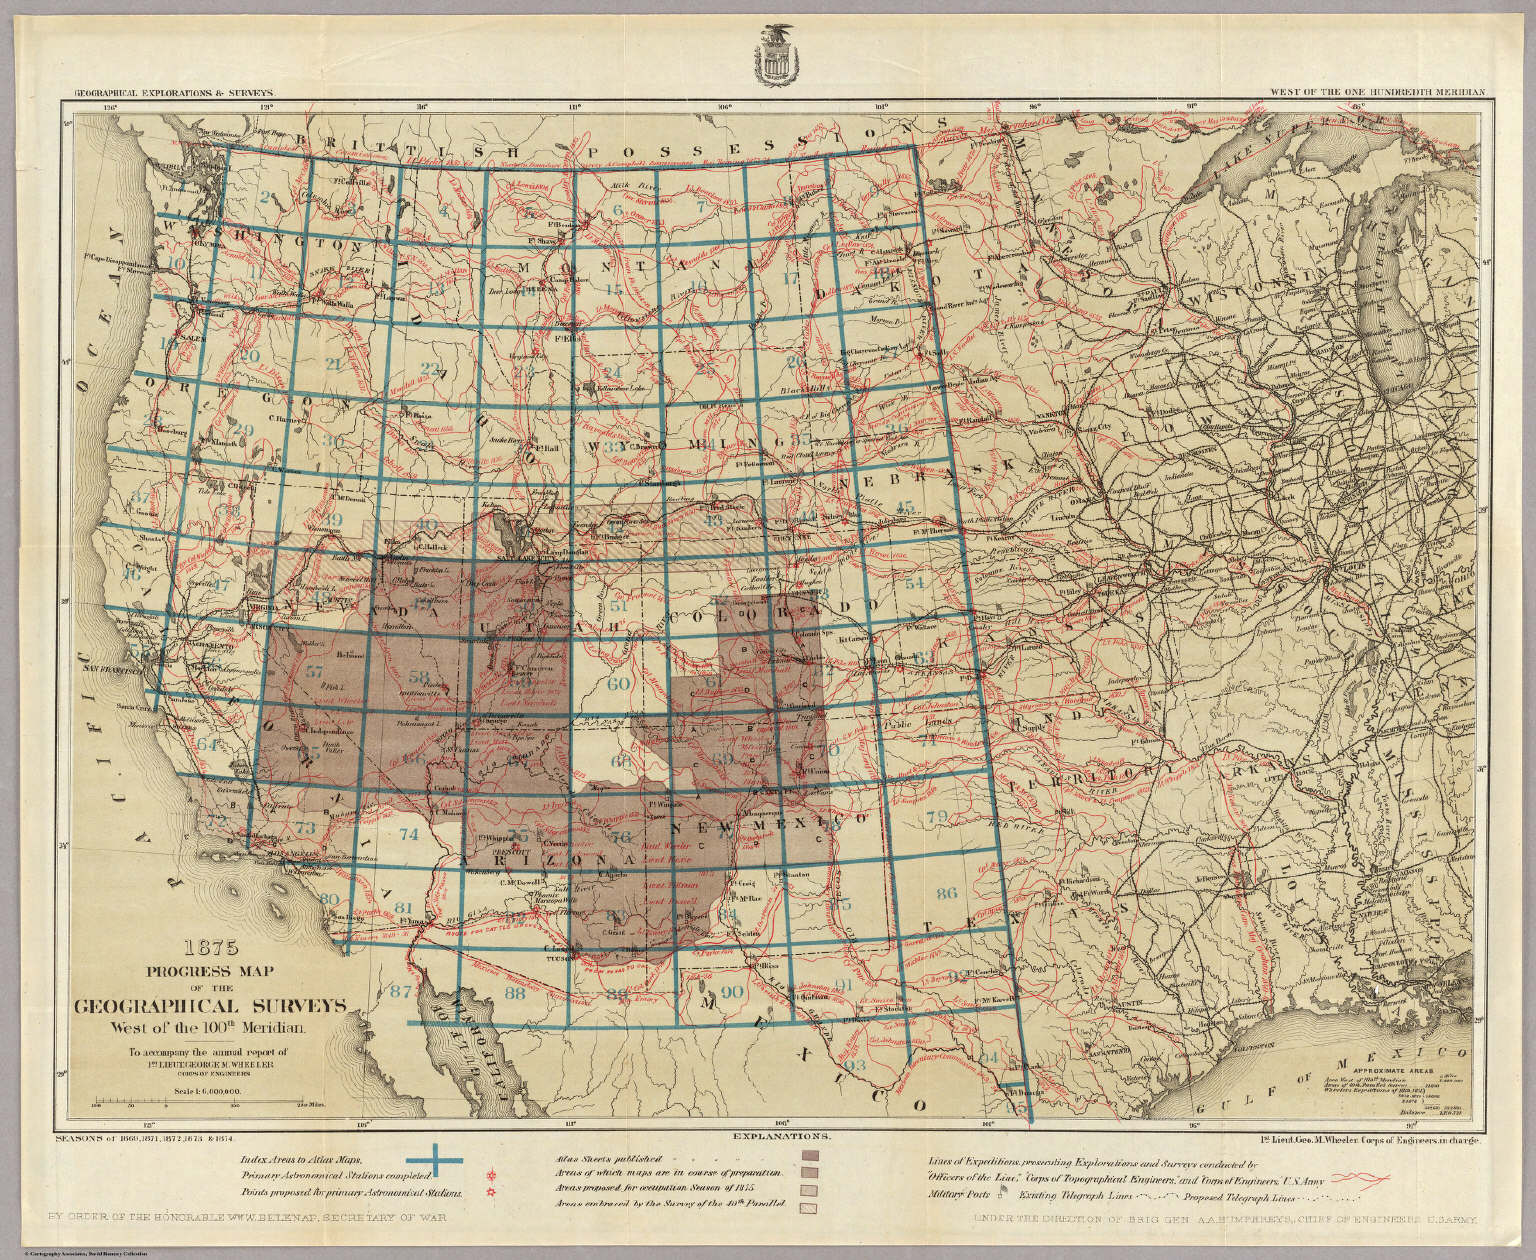 Progress Map Of The Geographical Surveys West Of The 100th Meridian